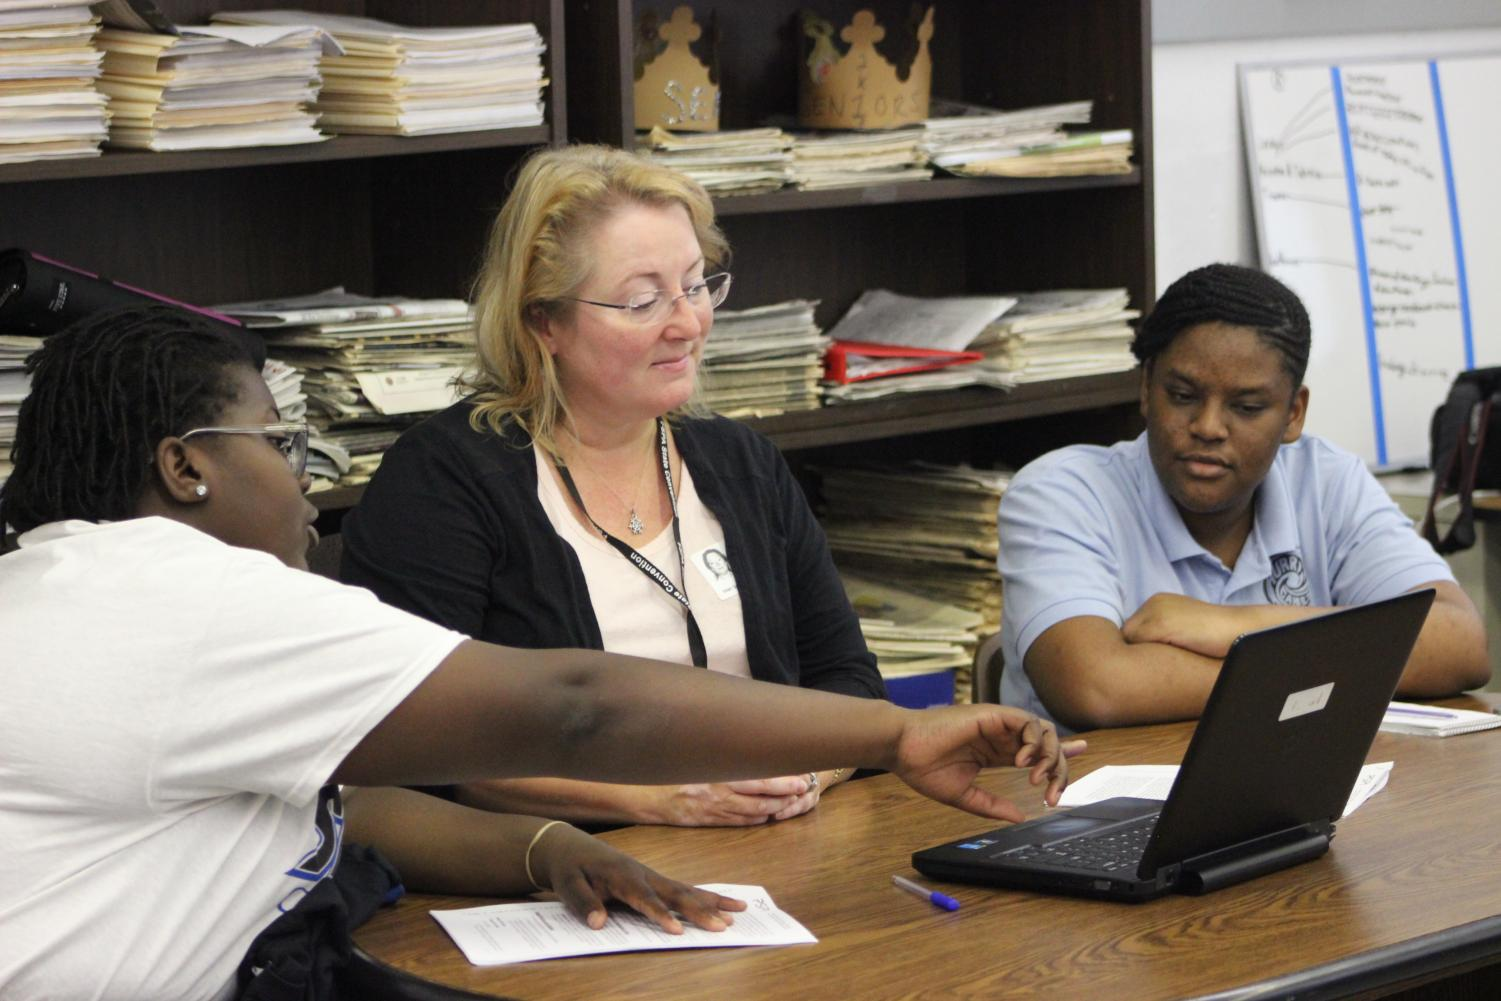 GRADUATION BOOK:  Editor-in-Chief Brianna Luberisse (left) and Co-Editor Brianna Dwyer confer with Walsworth yearbook company representative Tamara Moore (center) on ideas and designs during the Journalism class as the publications staff continue working to document the Canes' 2019-2020 year.